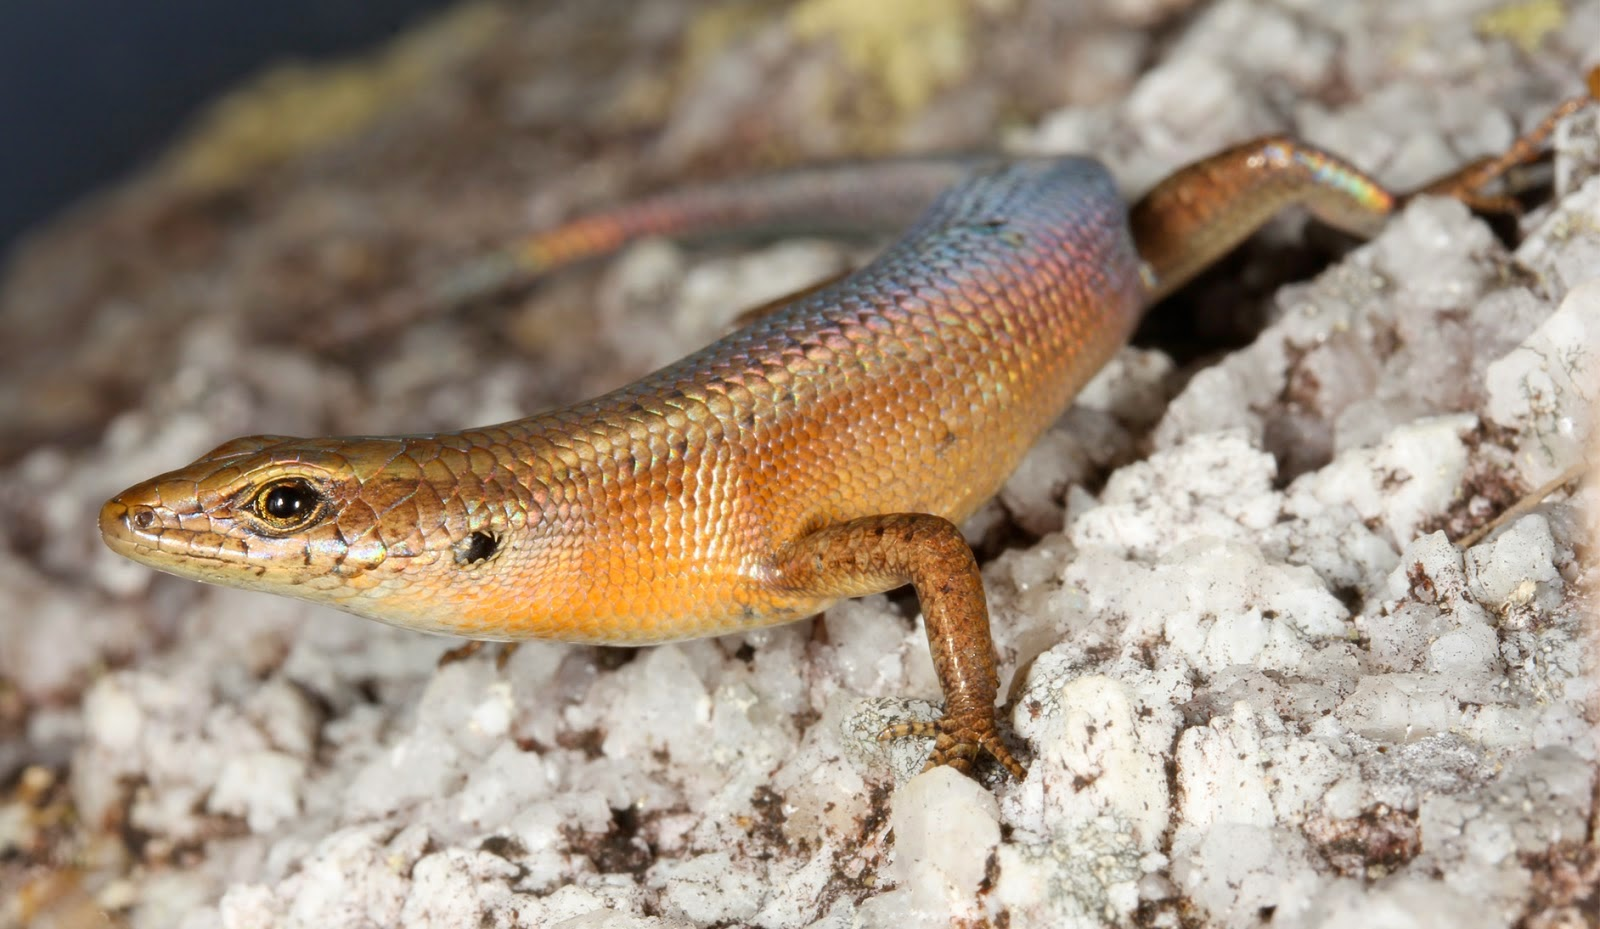 http://sciencythoughts.blogspot.co.uk/2014/10/a-new-species-of-skink-from-cape.html